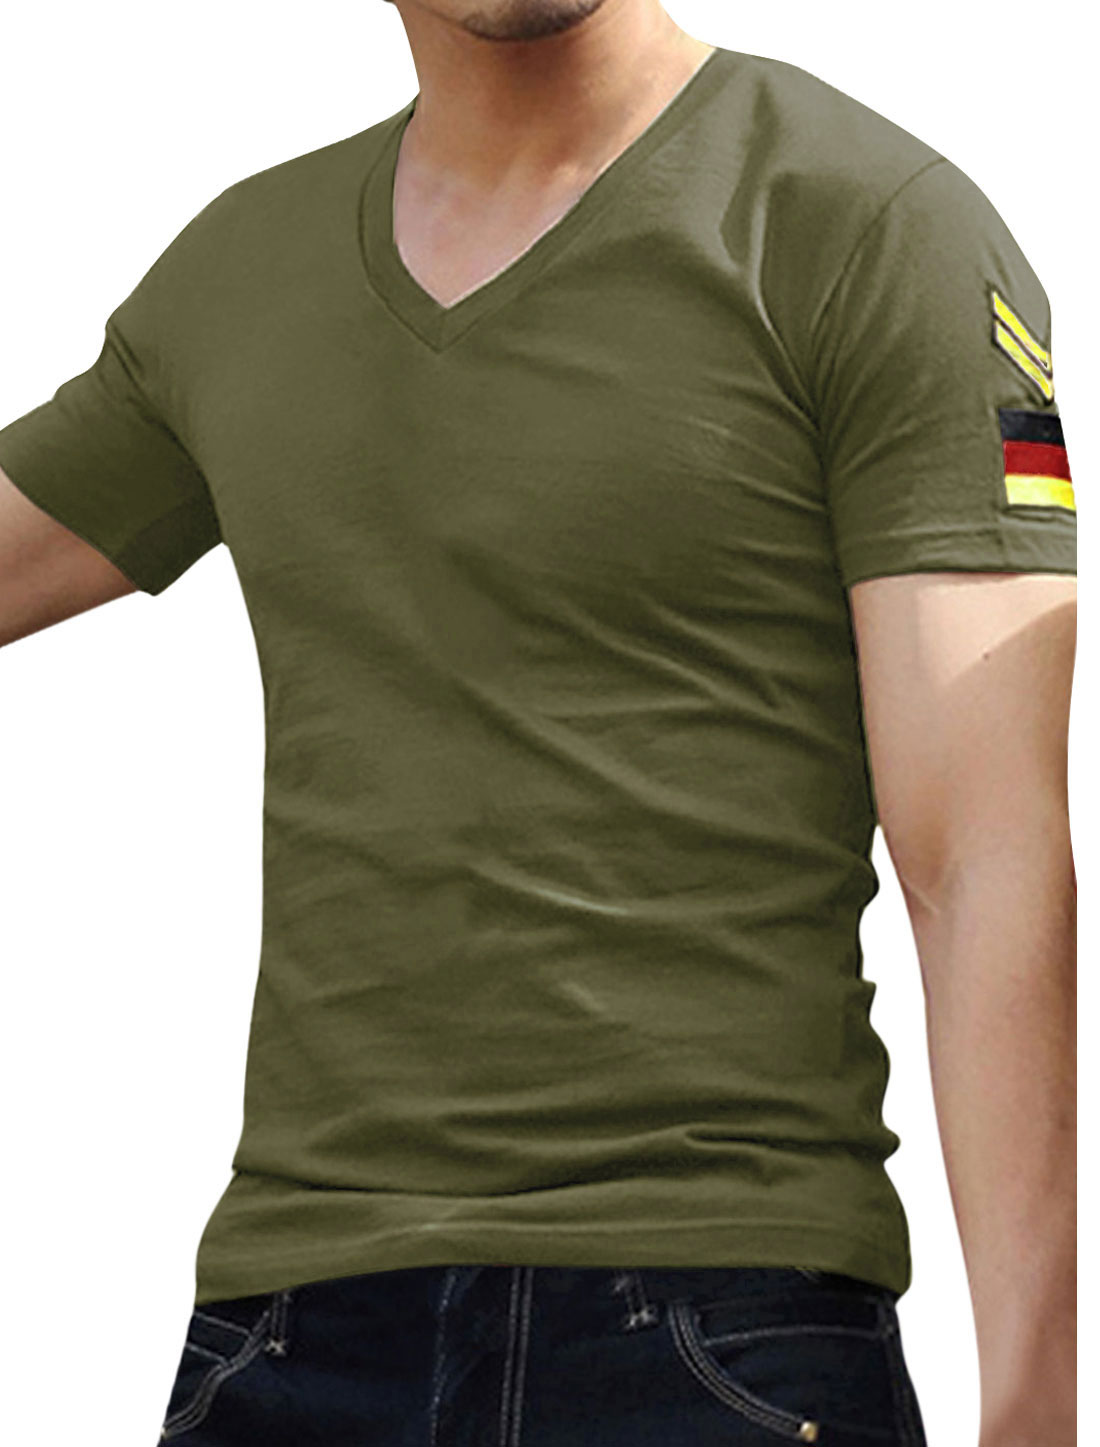 Mens Olive Green V Neckline Stretch Badge Embroidery Top Shirt L